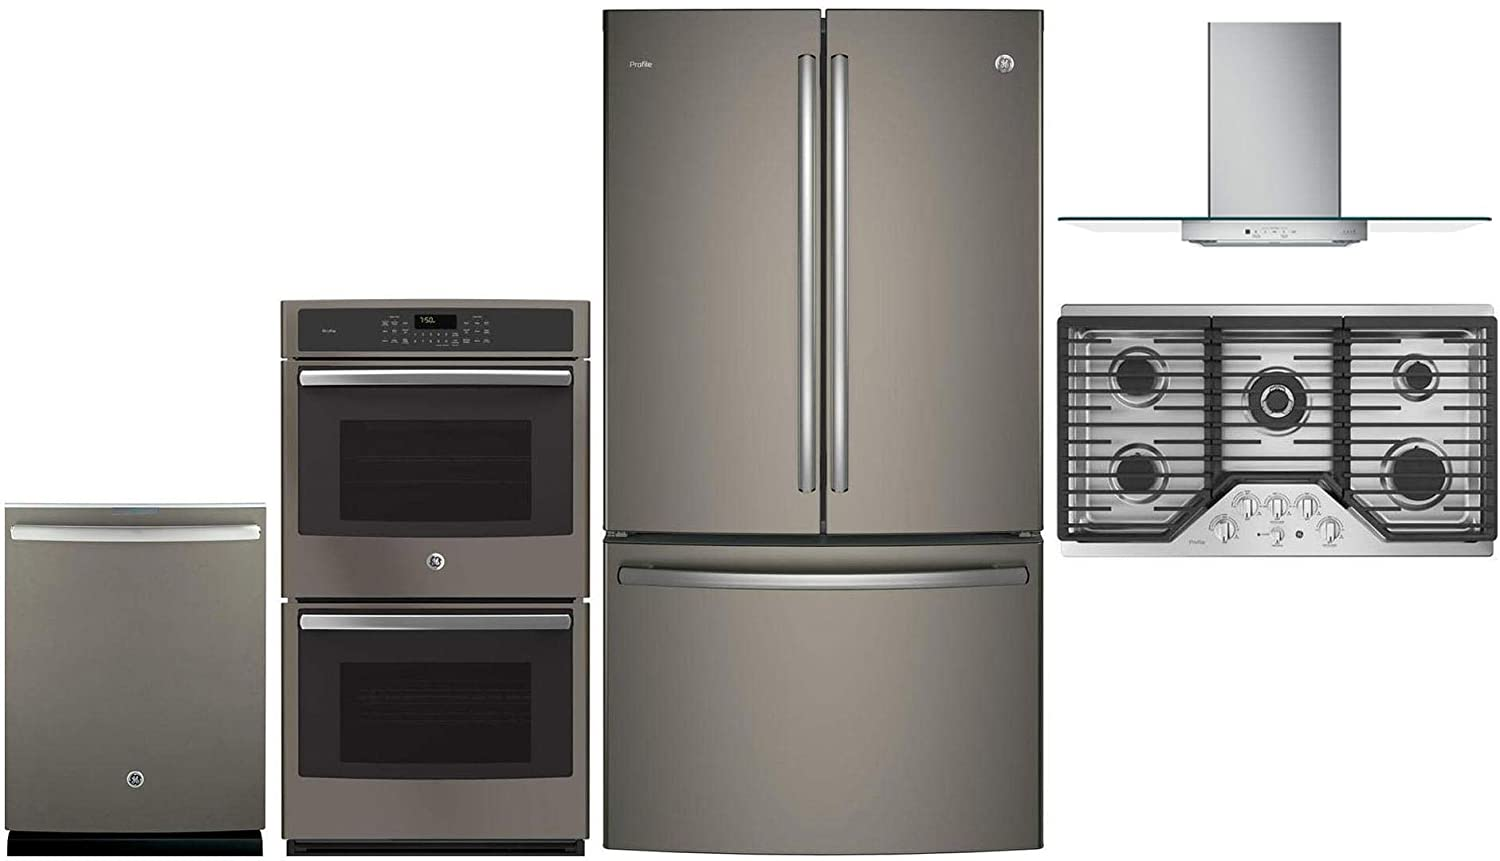 """GE Profile 5 Pcs Kitchen Appliance Package with 36"""" French Door Refrigerator, 36"""" Gas Cooktop, 36"""" Wall Mount Hood, 27"""" Electric Double Wall Oven and 24"""" Built In Fully Integrated Dishwasher in Slate"""